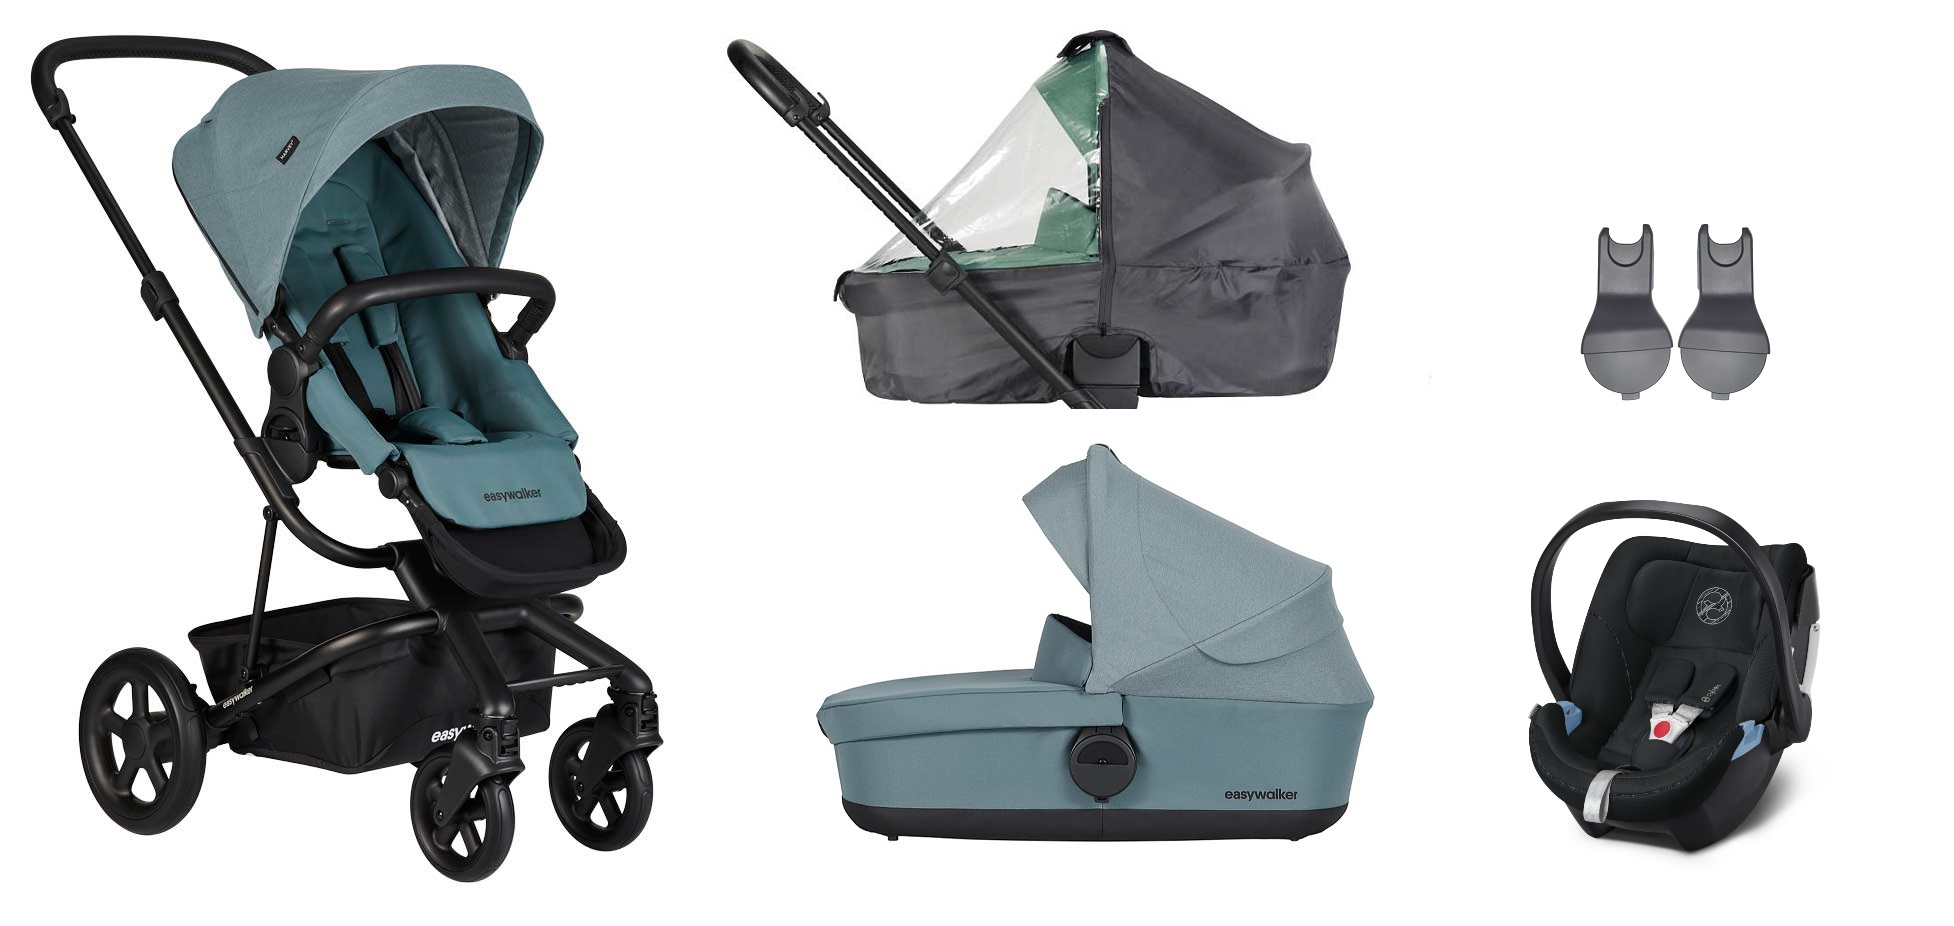 Kinderwagen Ophangen Easywalker Harvey 2 Kinderwagen 3 In 1 Set